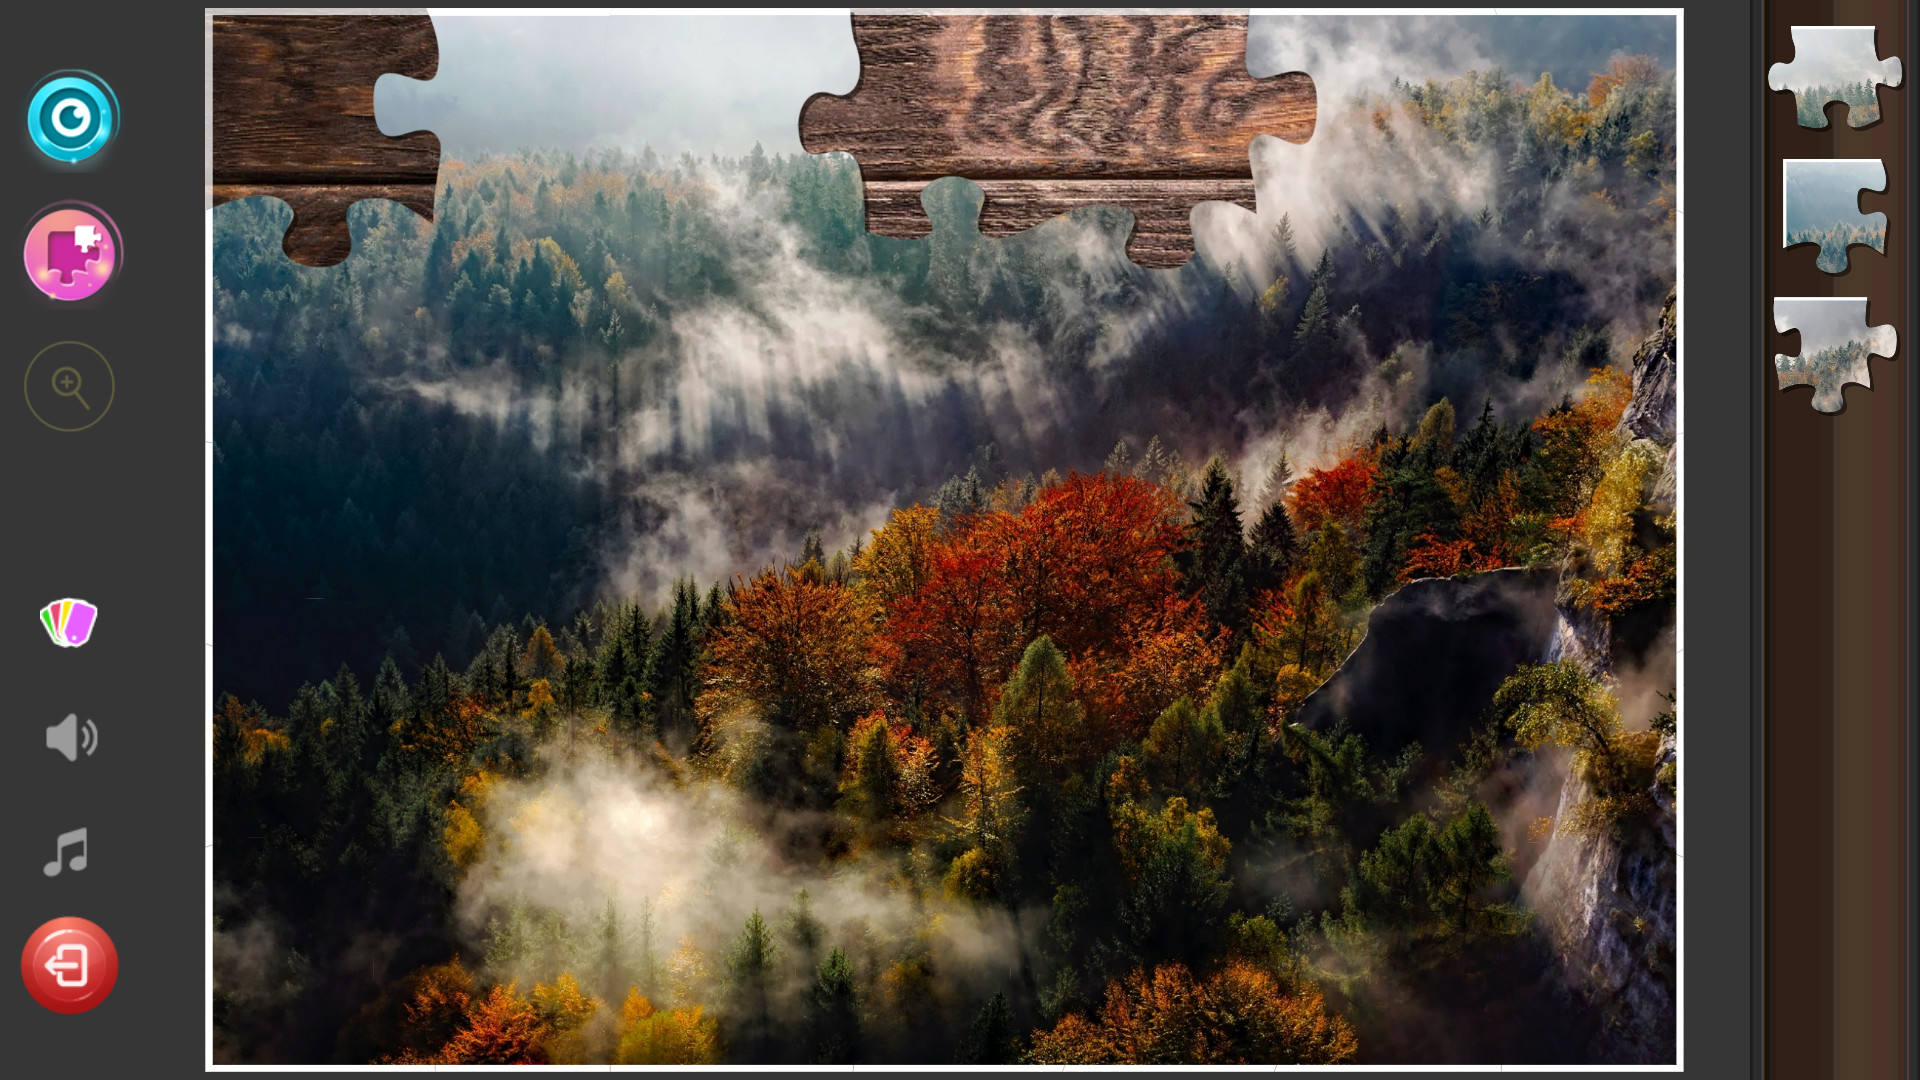 Classic Jigsaw Puzzles: Forest Jigsaw Puzzles (2019